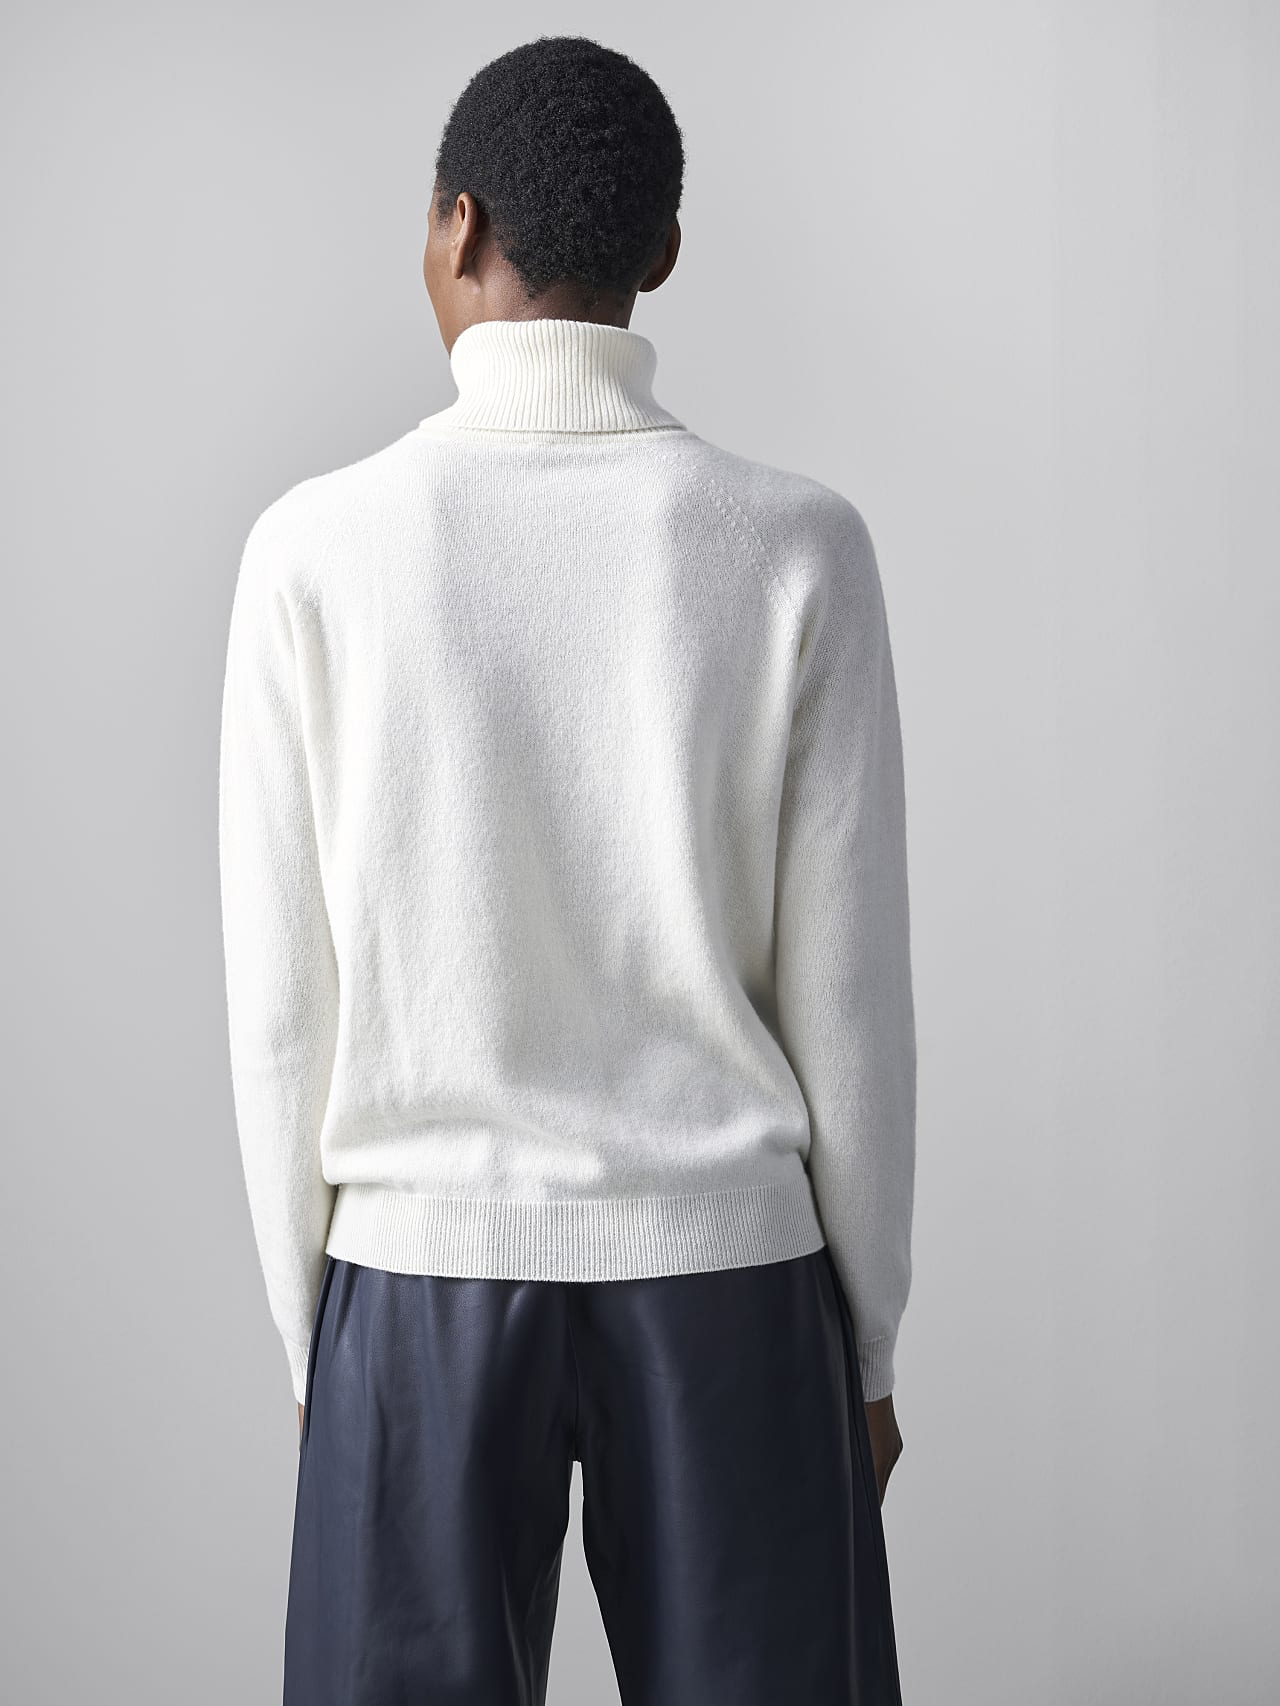 FLAMY V1.Y5.02 Seamless 3D Knit Merino-Cashmere Turtle Neck offwhite Front Main Alpha Tauri